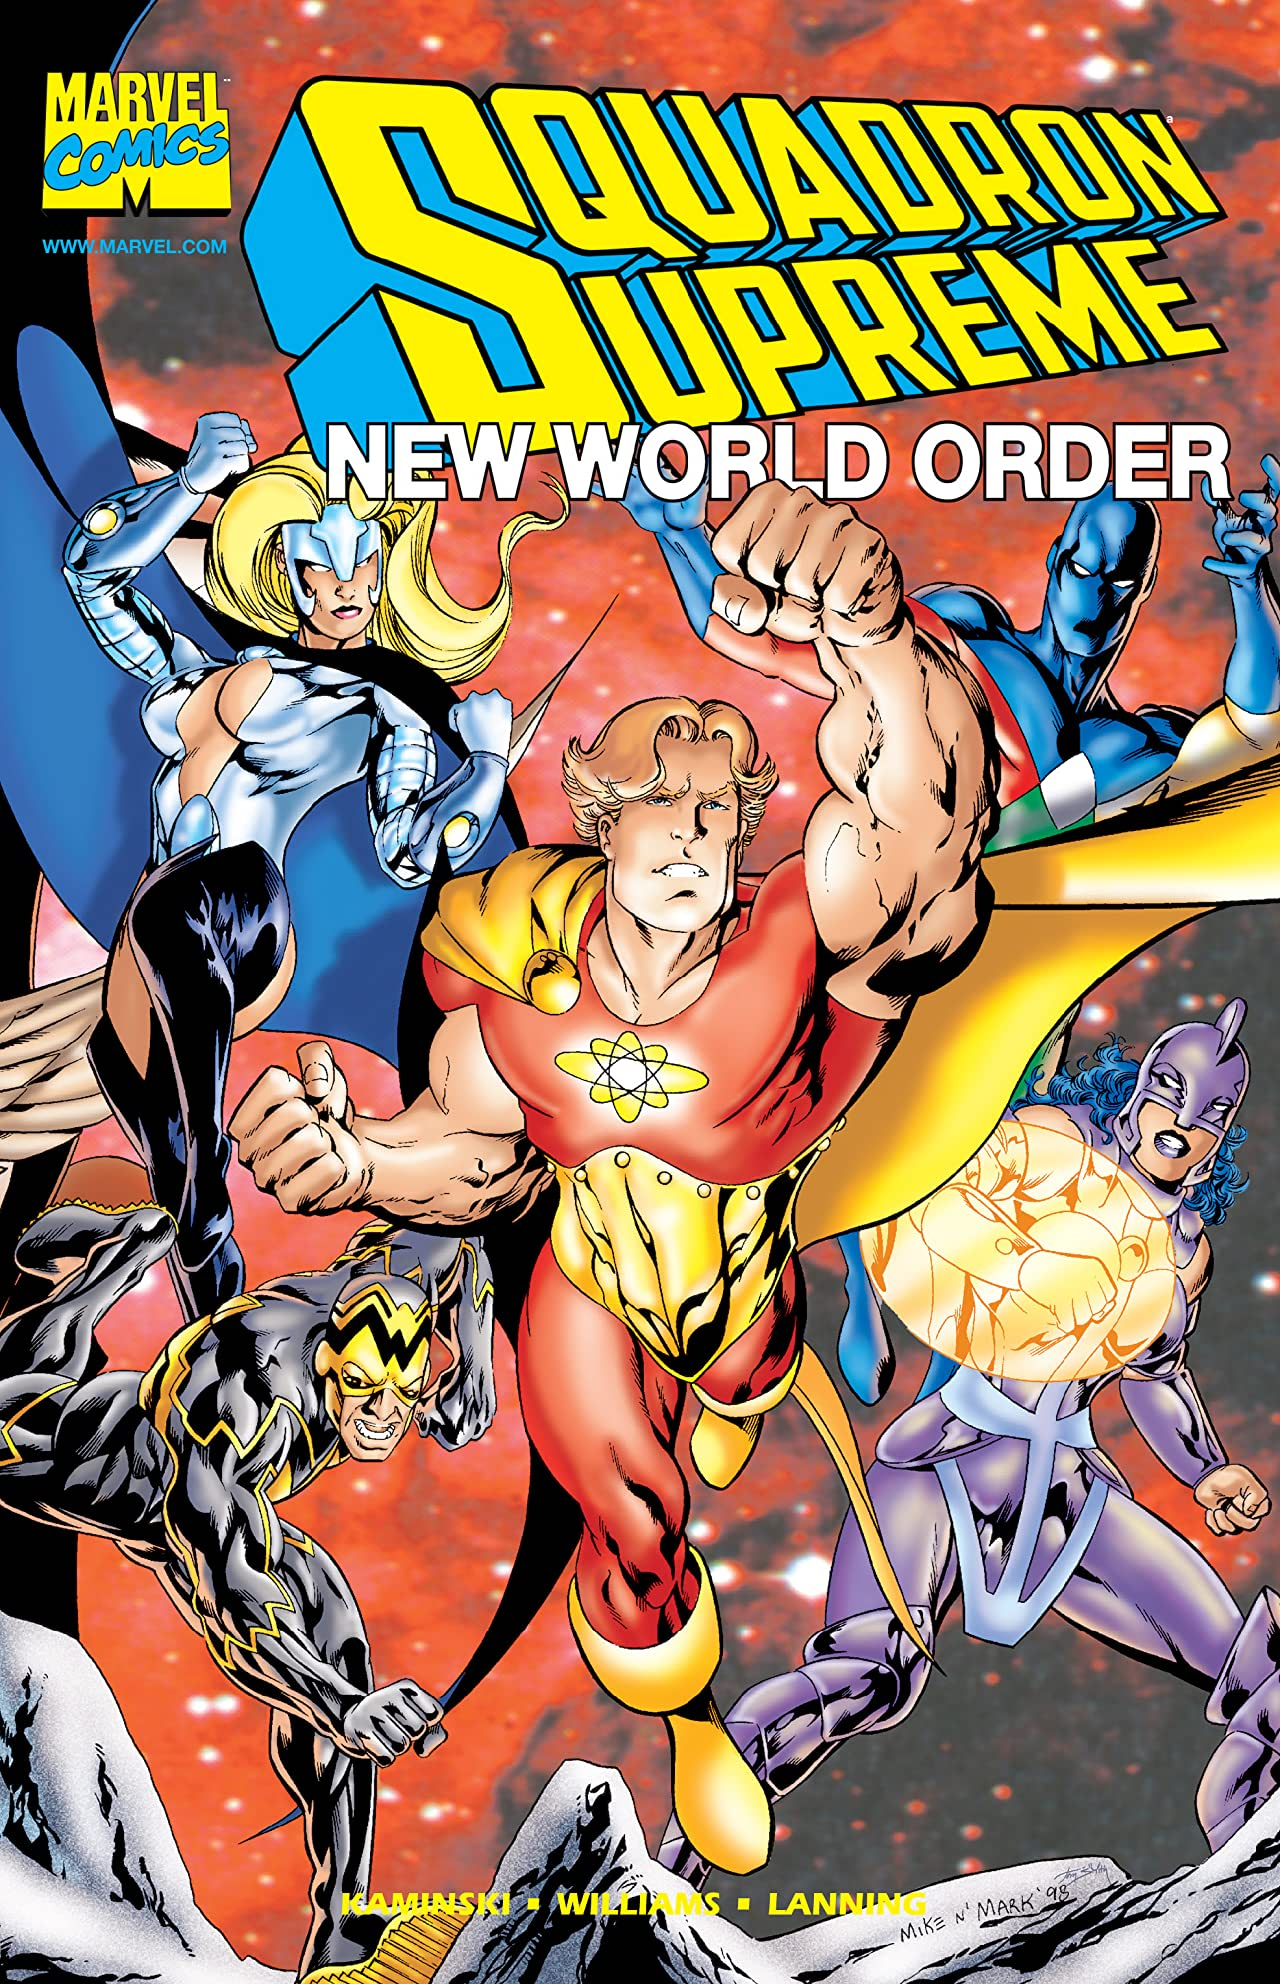 Squadron Supreme: New World Order (1998) #1